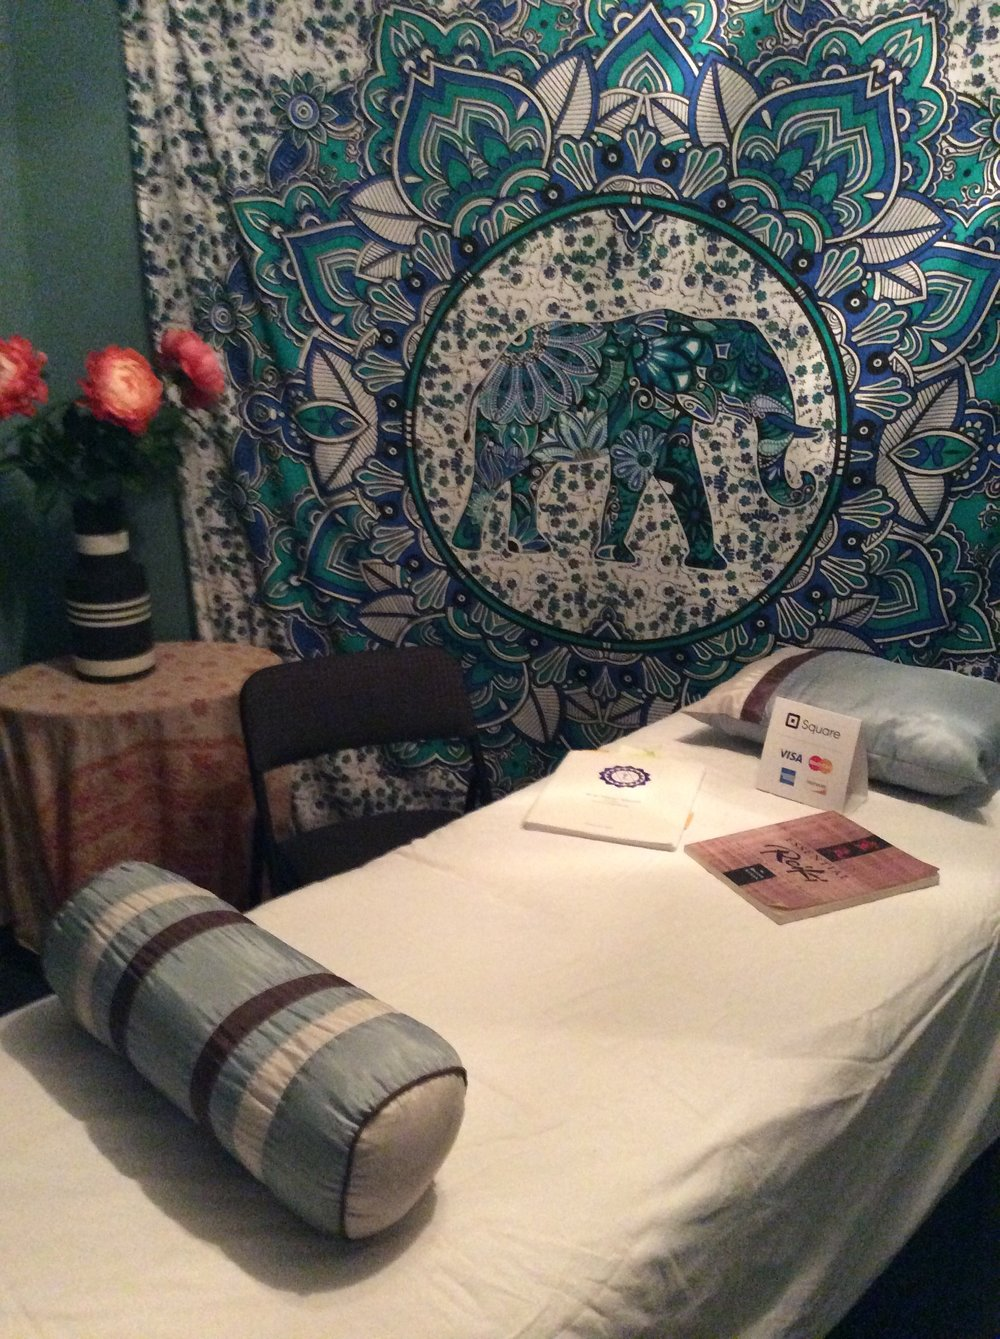 A look at Heather Larson's Reiki and Life Coaching room at White Dove metaphysical bookstore and yoga studio in Wichita, Kansas, 2017.